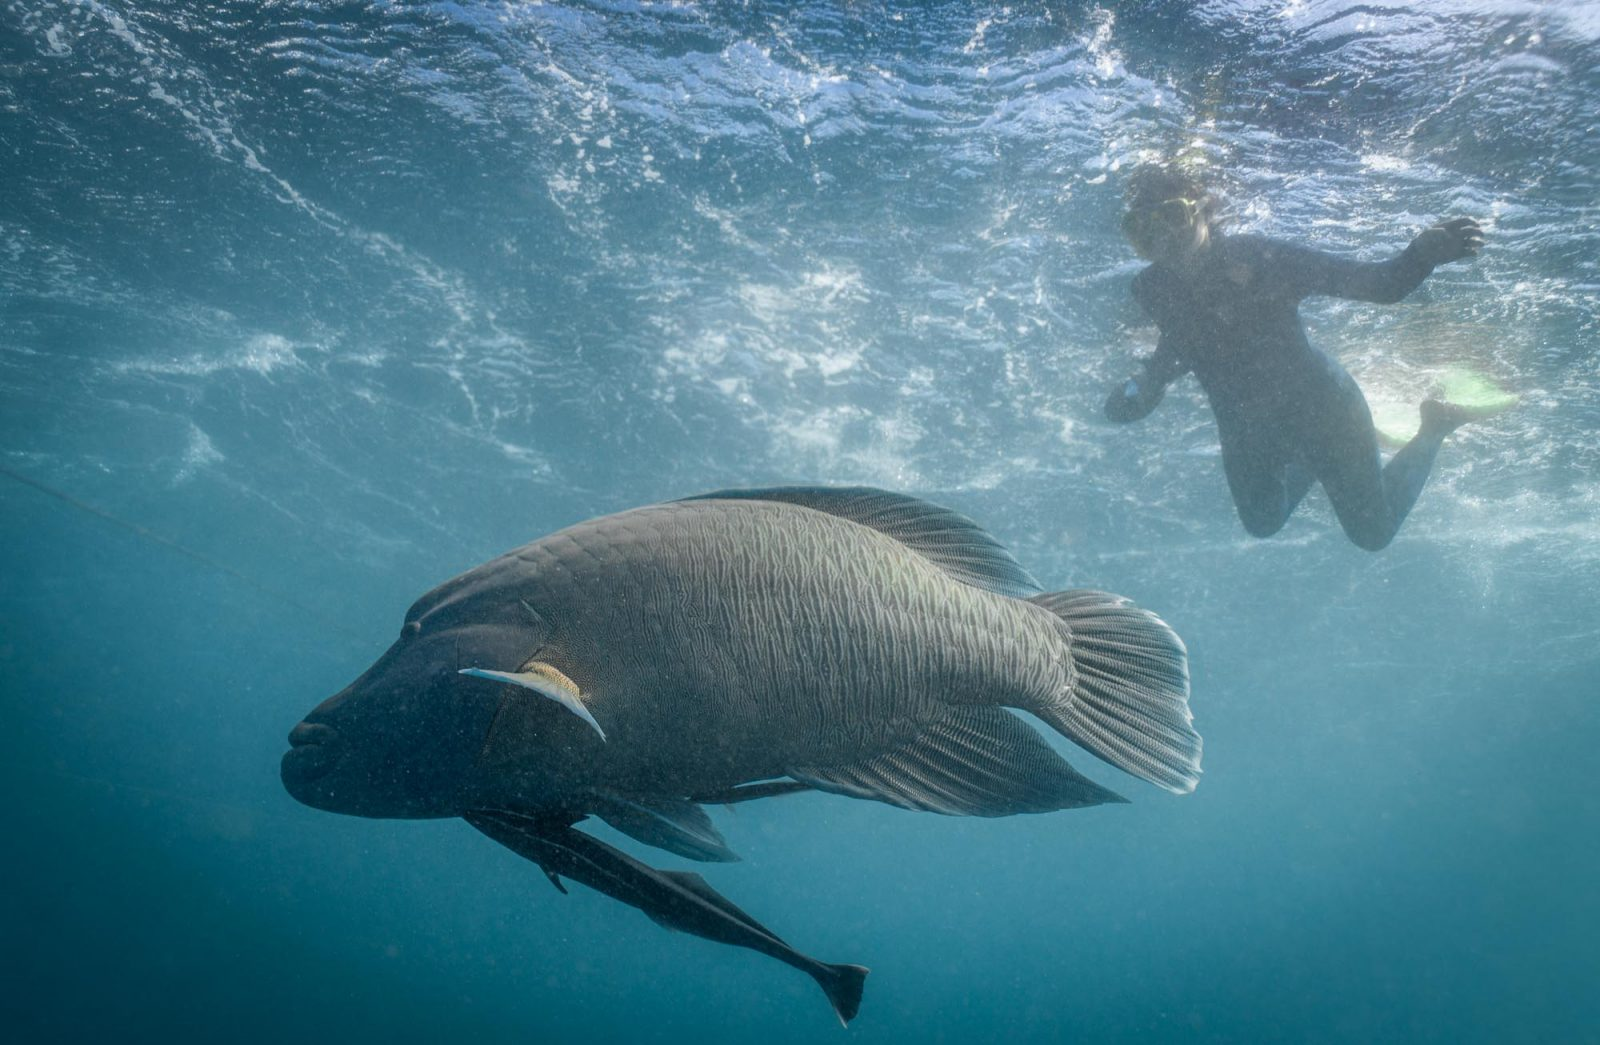 Snorkeling with Napoleon Wrasse on the Great Barrier Reef